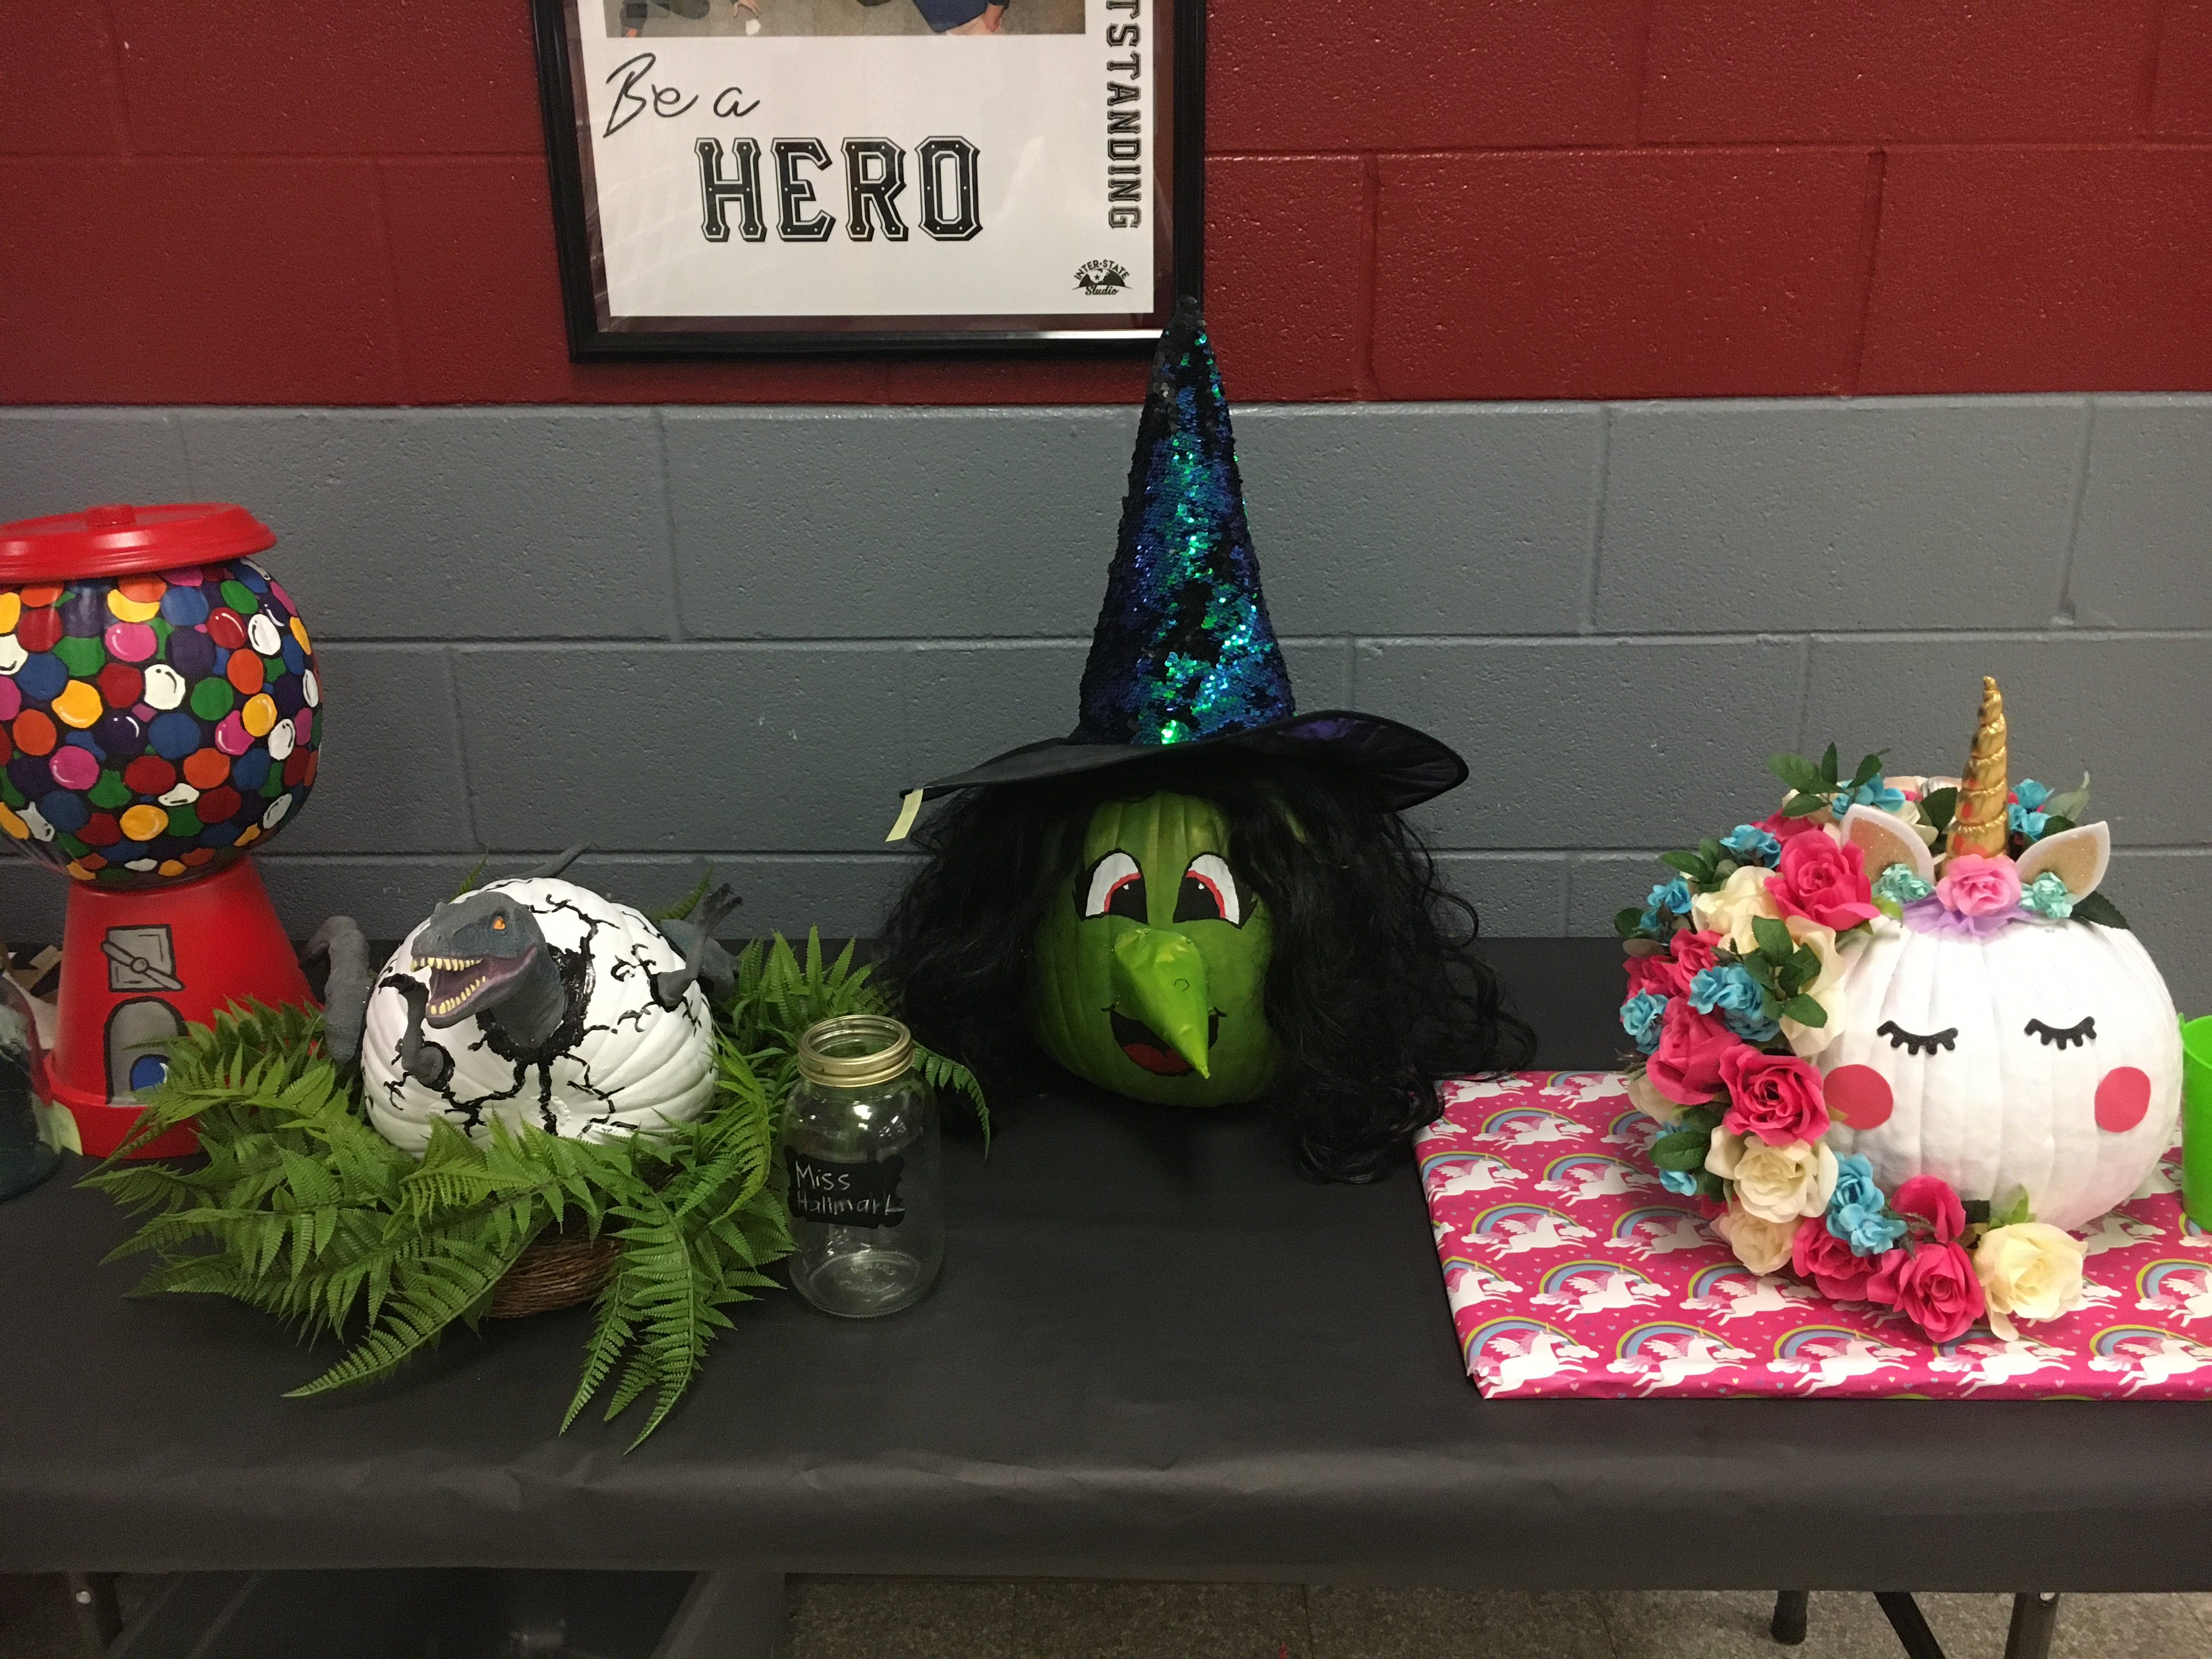 Decorated pumpkins on a table